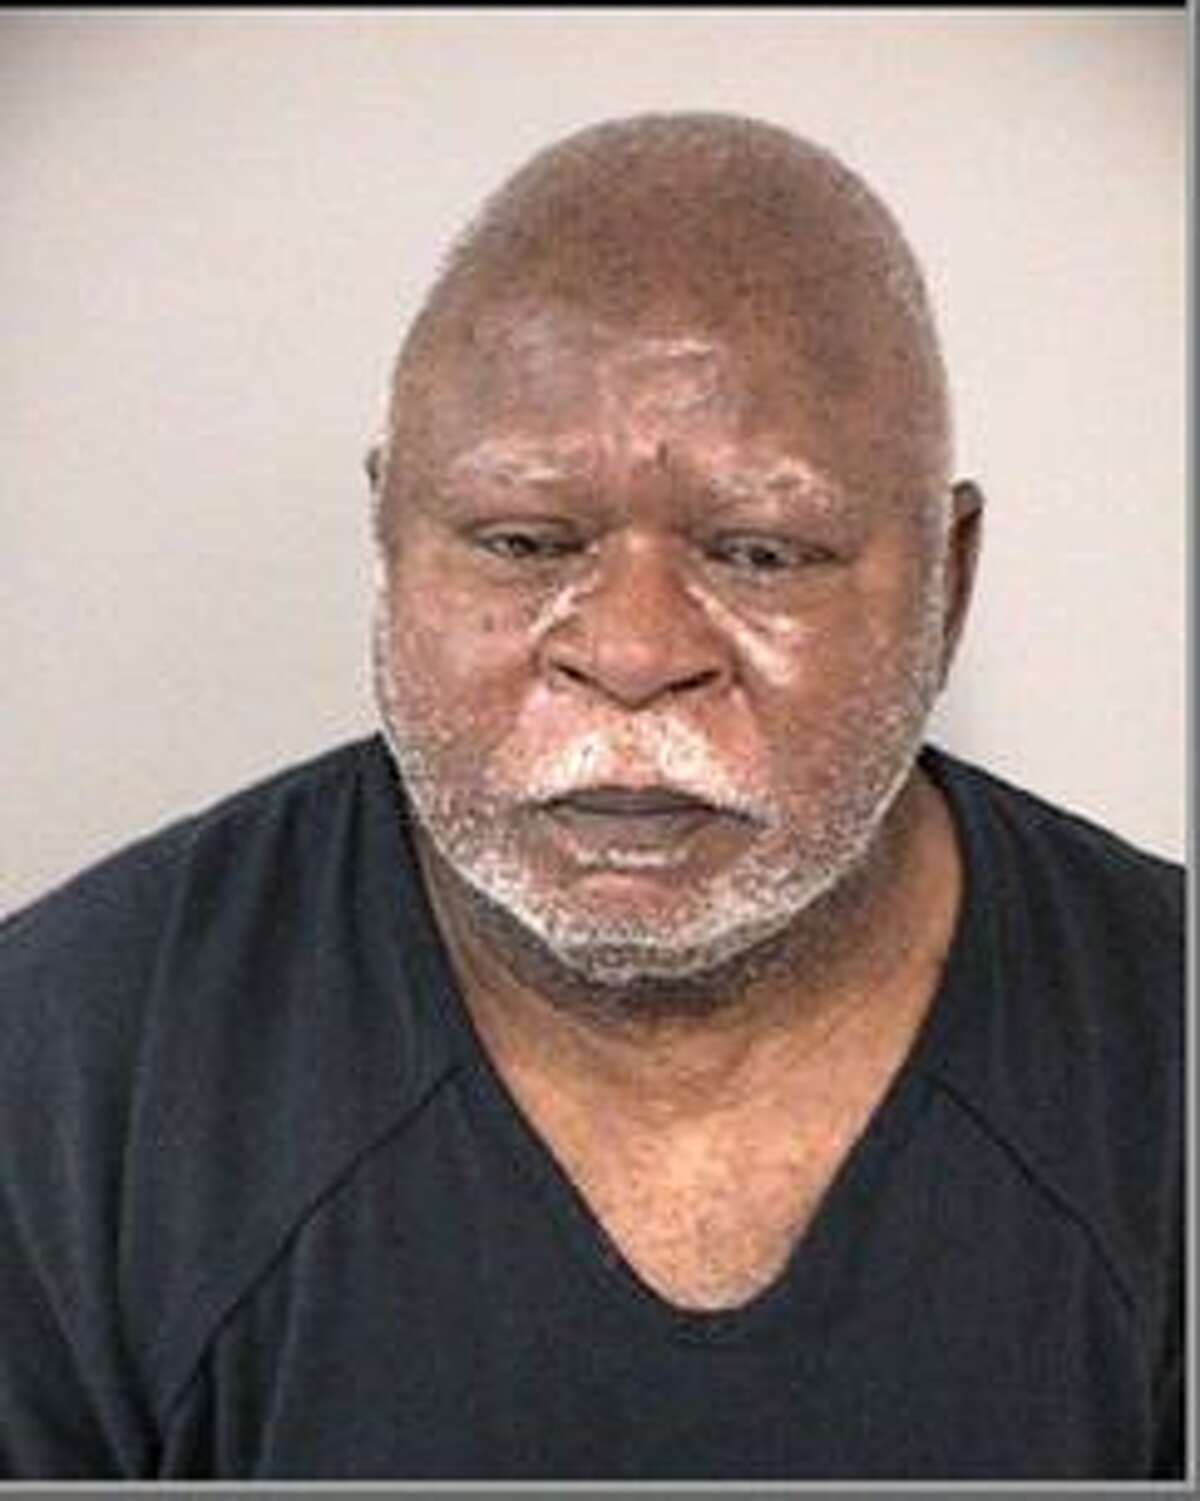 Ubadire Sampson Anosike, 73, of Cinco Ranch is facing a felony charge of fraudulent use or possession of identification information.